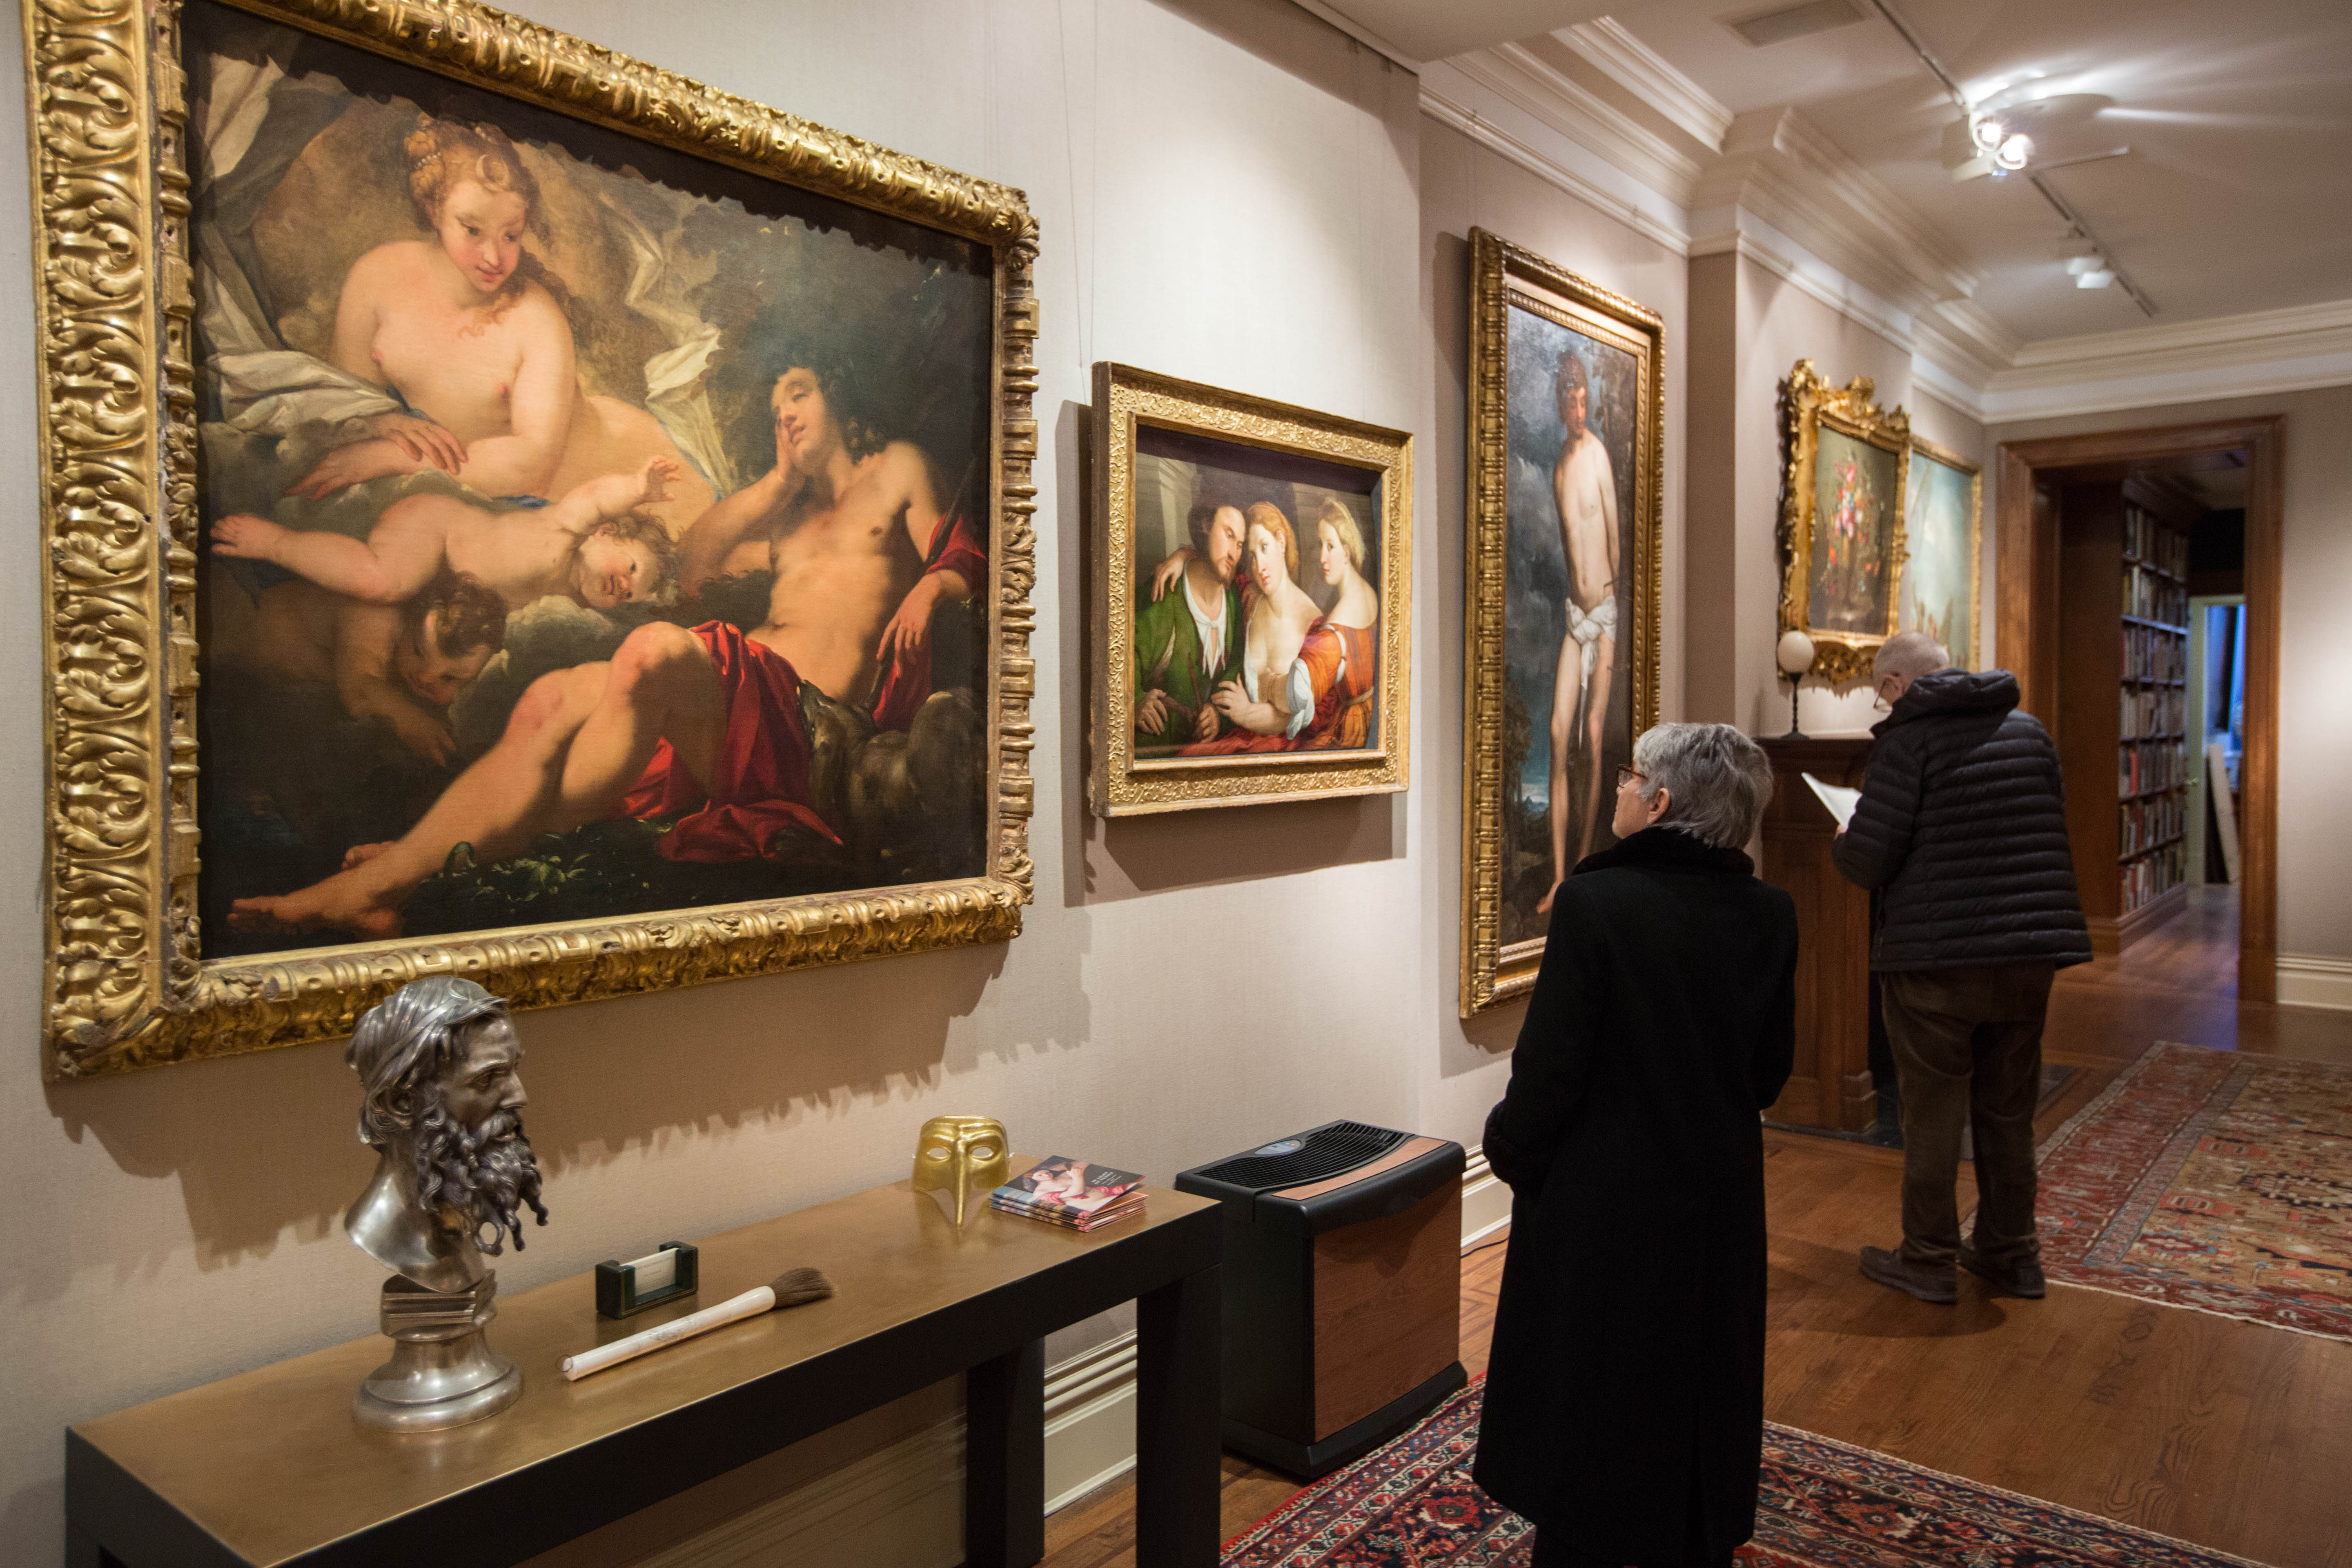 Renaissance Paintings Make a Splash—Works by Venetian Masters Unveiled to Public